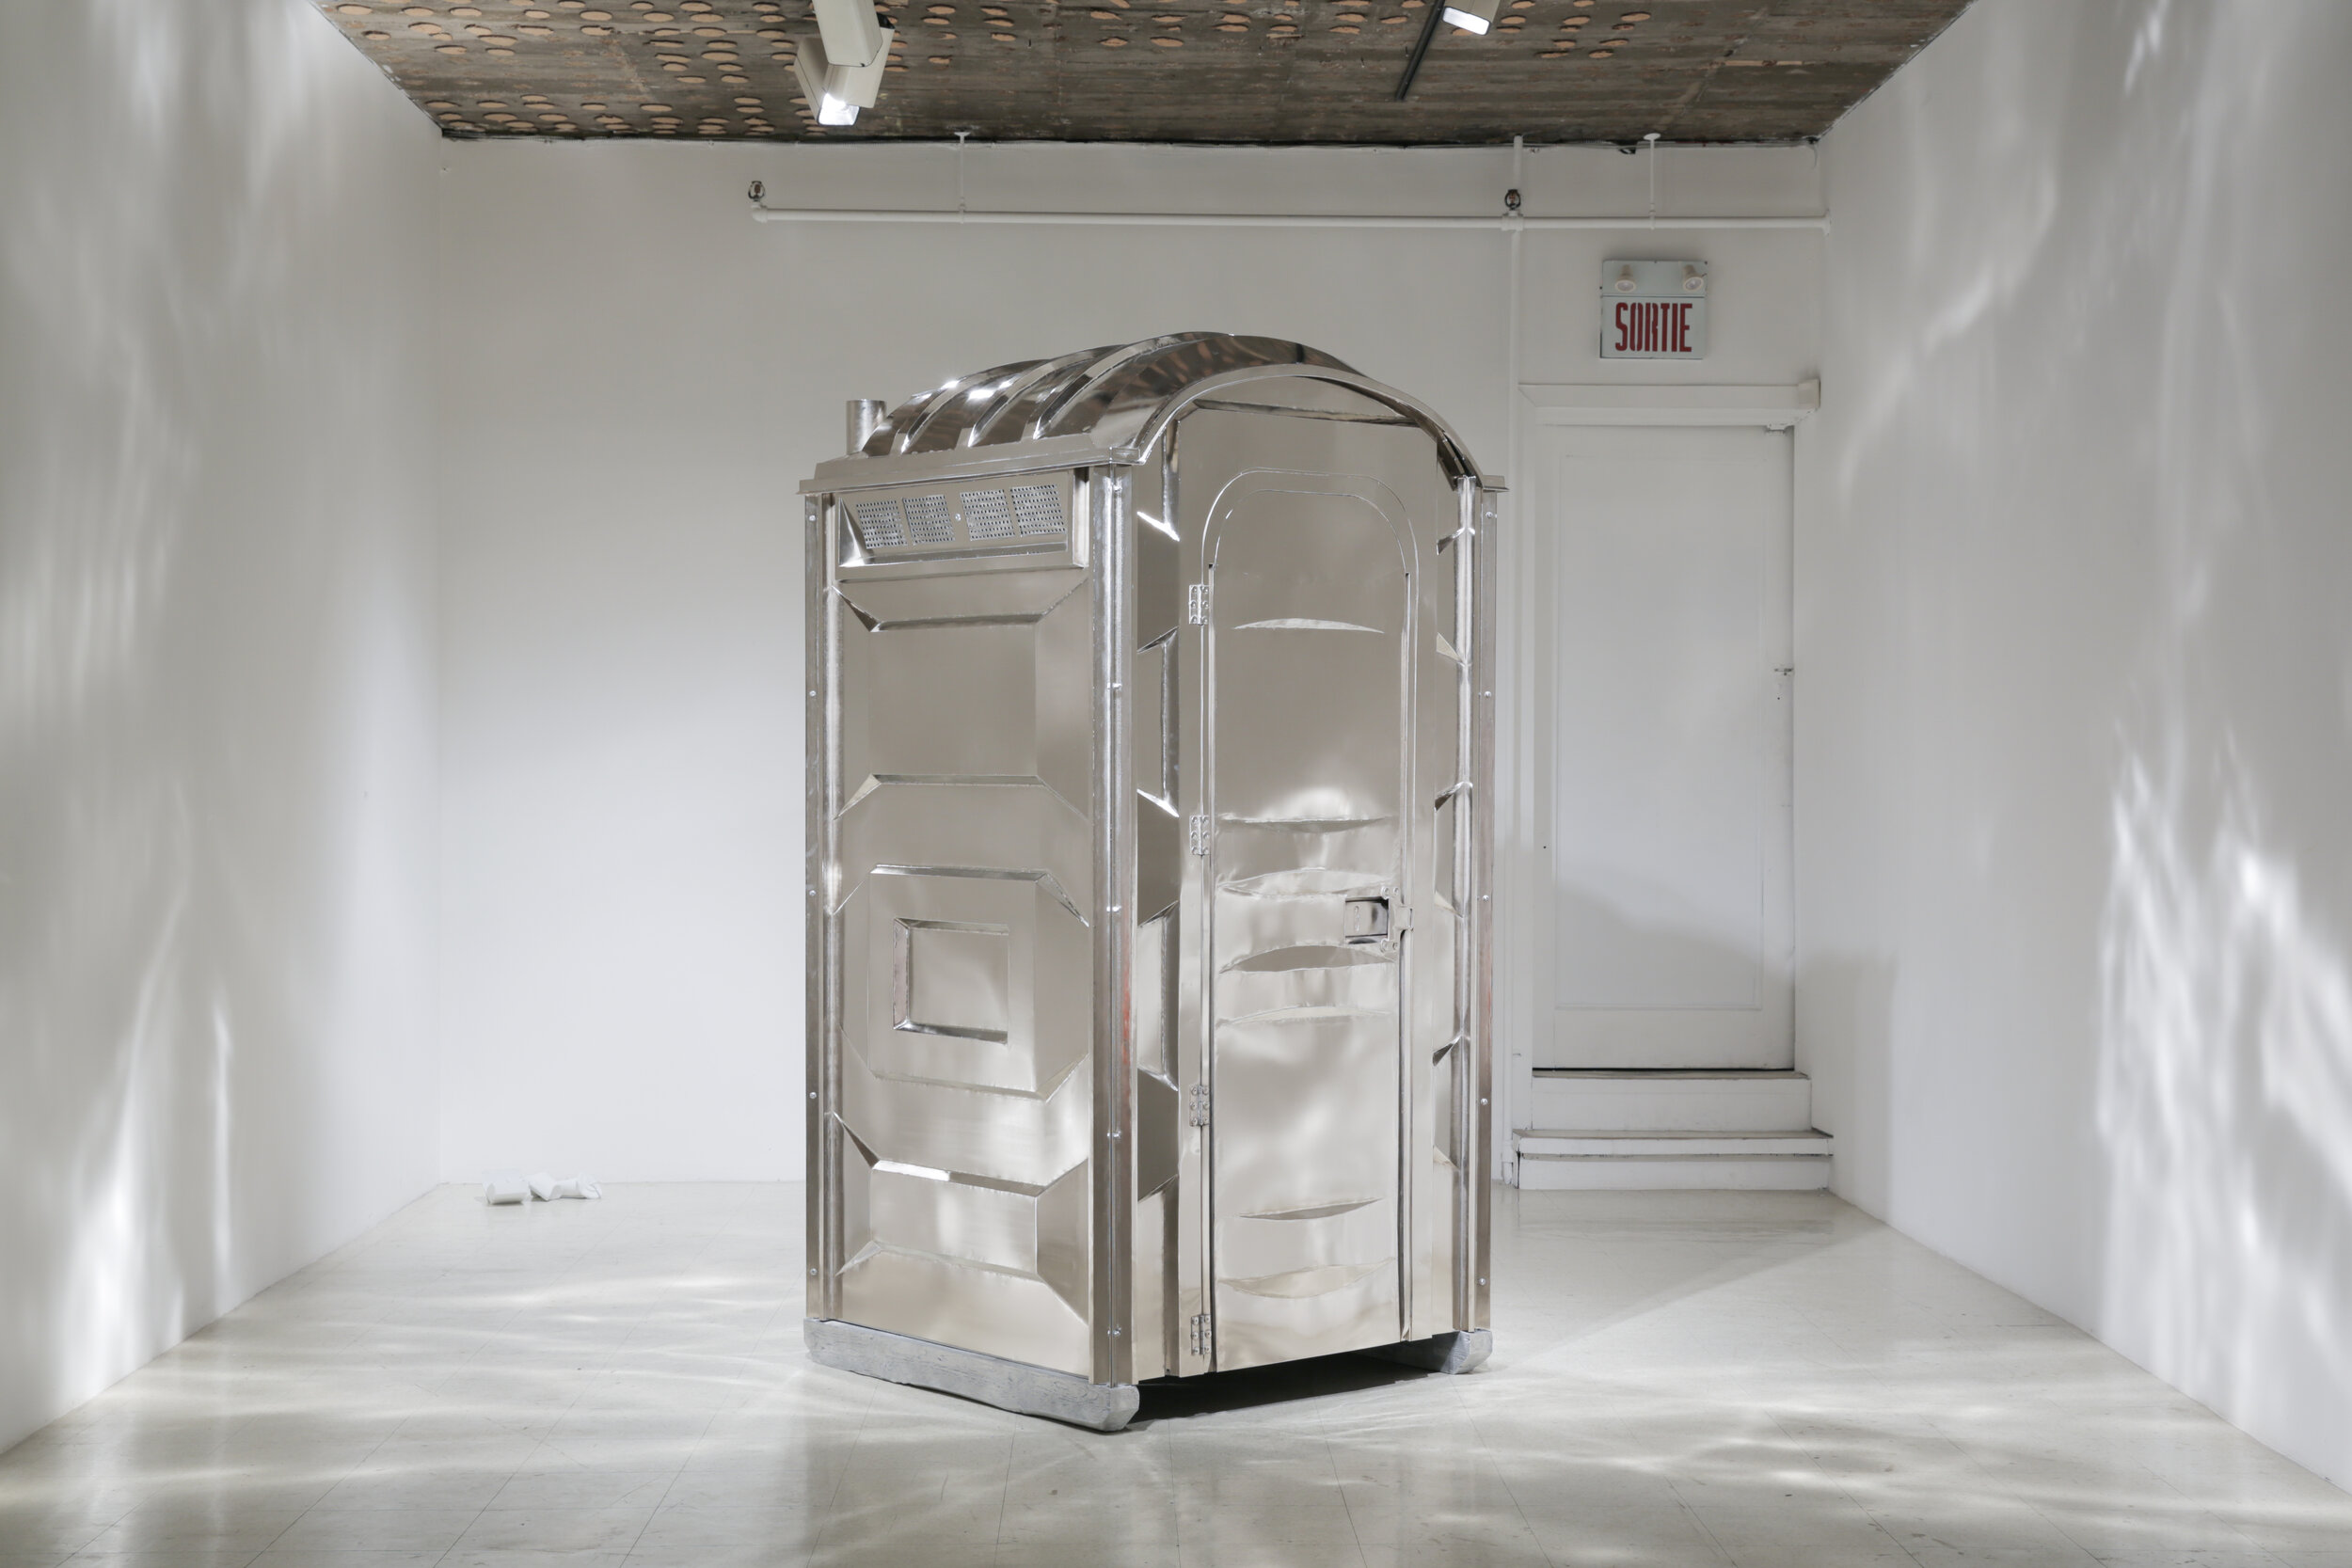 Zeke Moores,  Port-O-Potty , 2011, nickel plated steel, cast aluminum, 84 in x 46 in x 46in, courtesy of Art Mûr